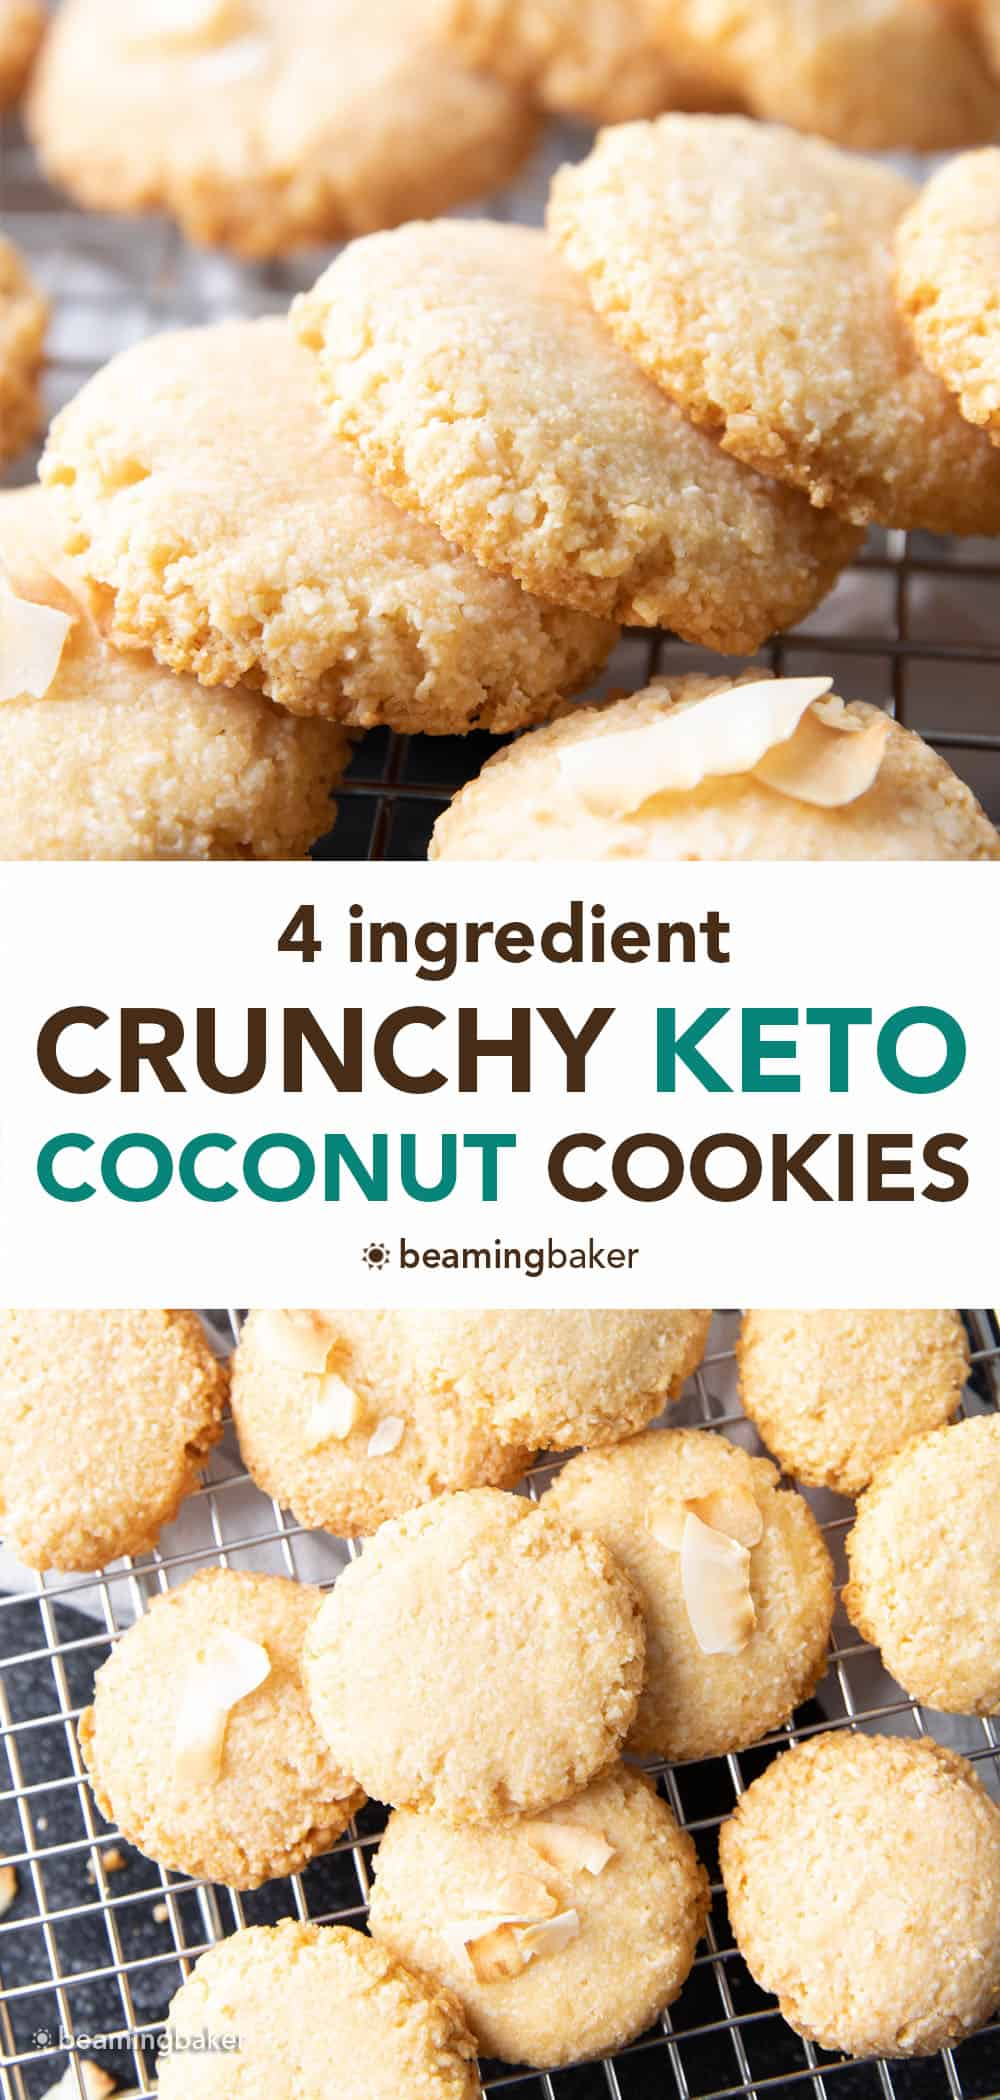 Crunchy Keto Coconut Cookies – 4 ingredient keto coconut cookies that are crunchy & crisp, with delightful coconut flavor. Easy to make, Low Carb! #Keto #KetoCookies #Coconut #LowCarb | Recipe at BeamingBaker.com